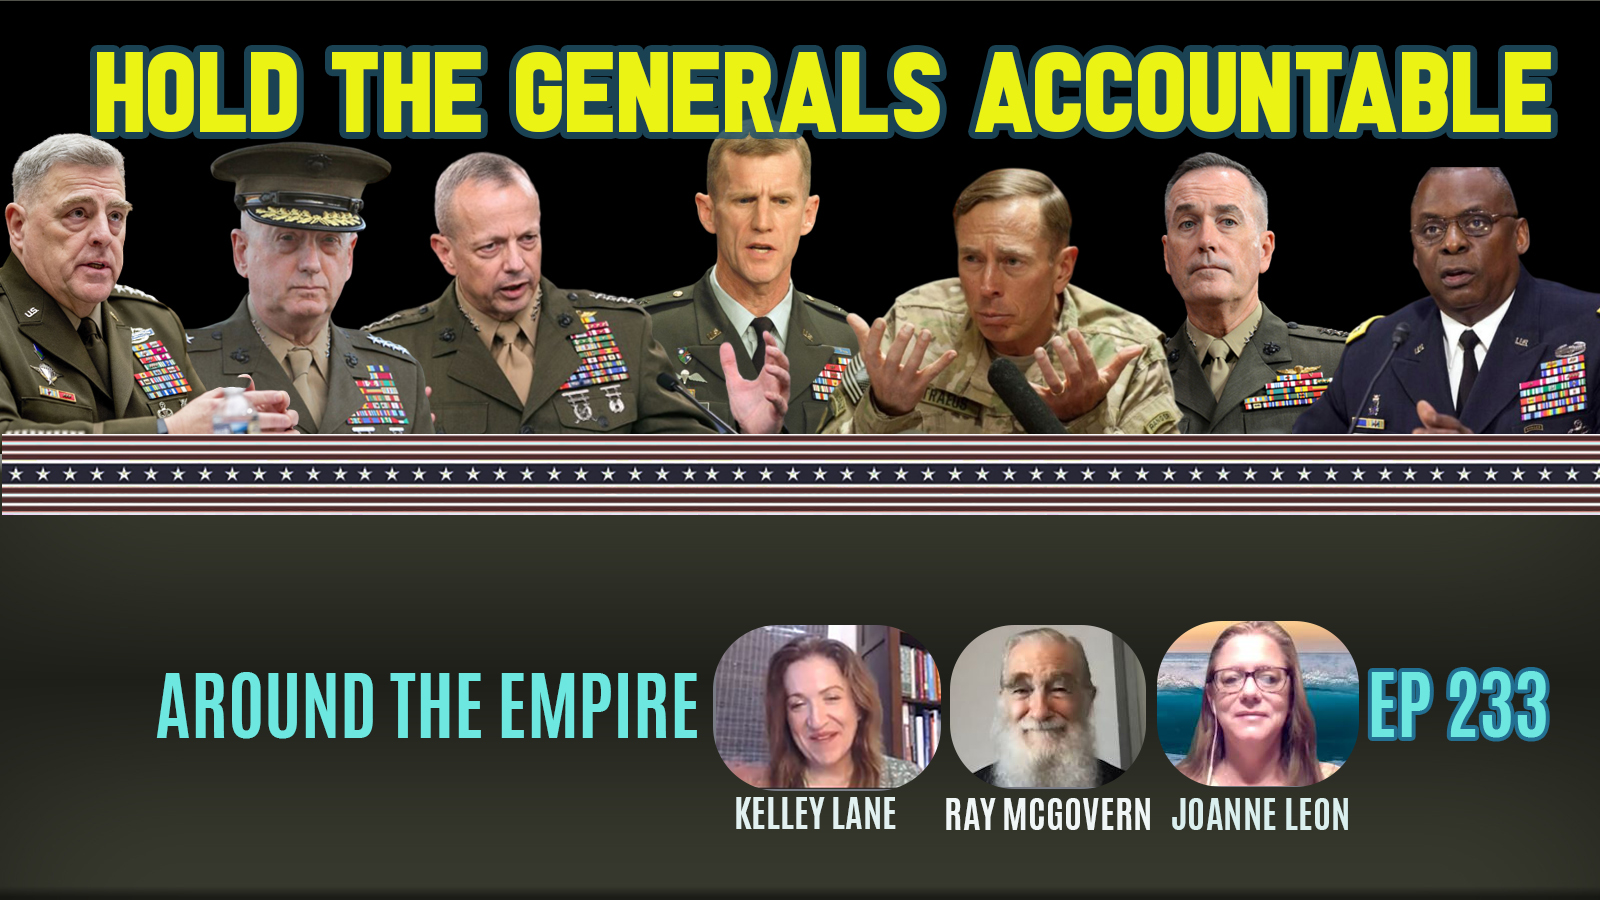 Ep 233 Hold the Generals Accountable This Time feat Ray McGovern